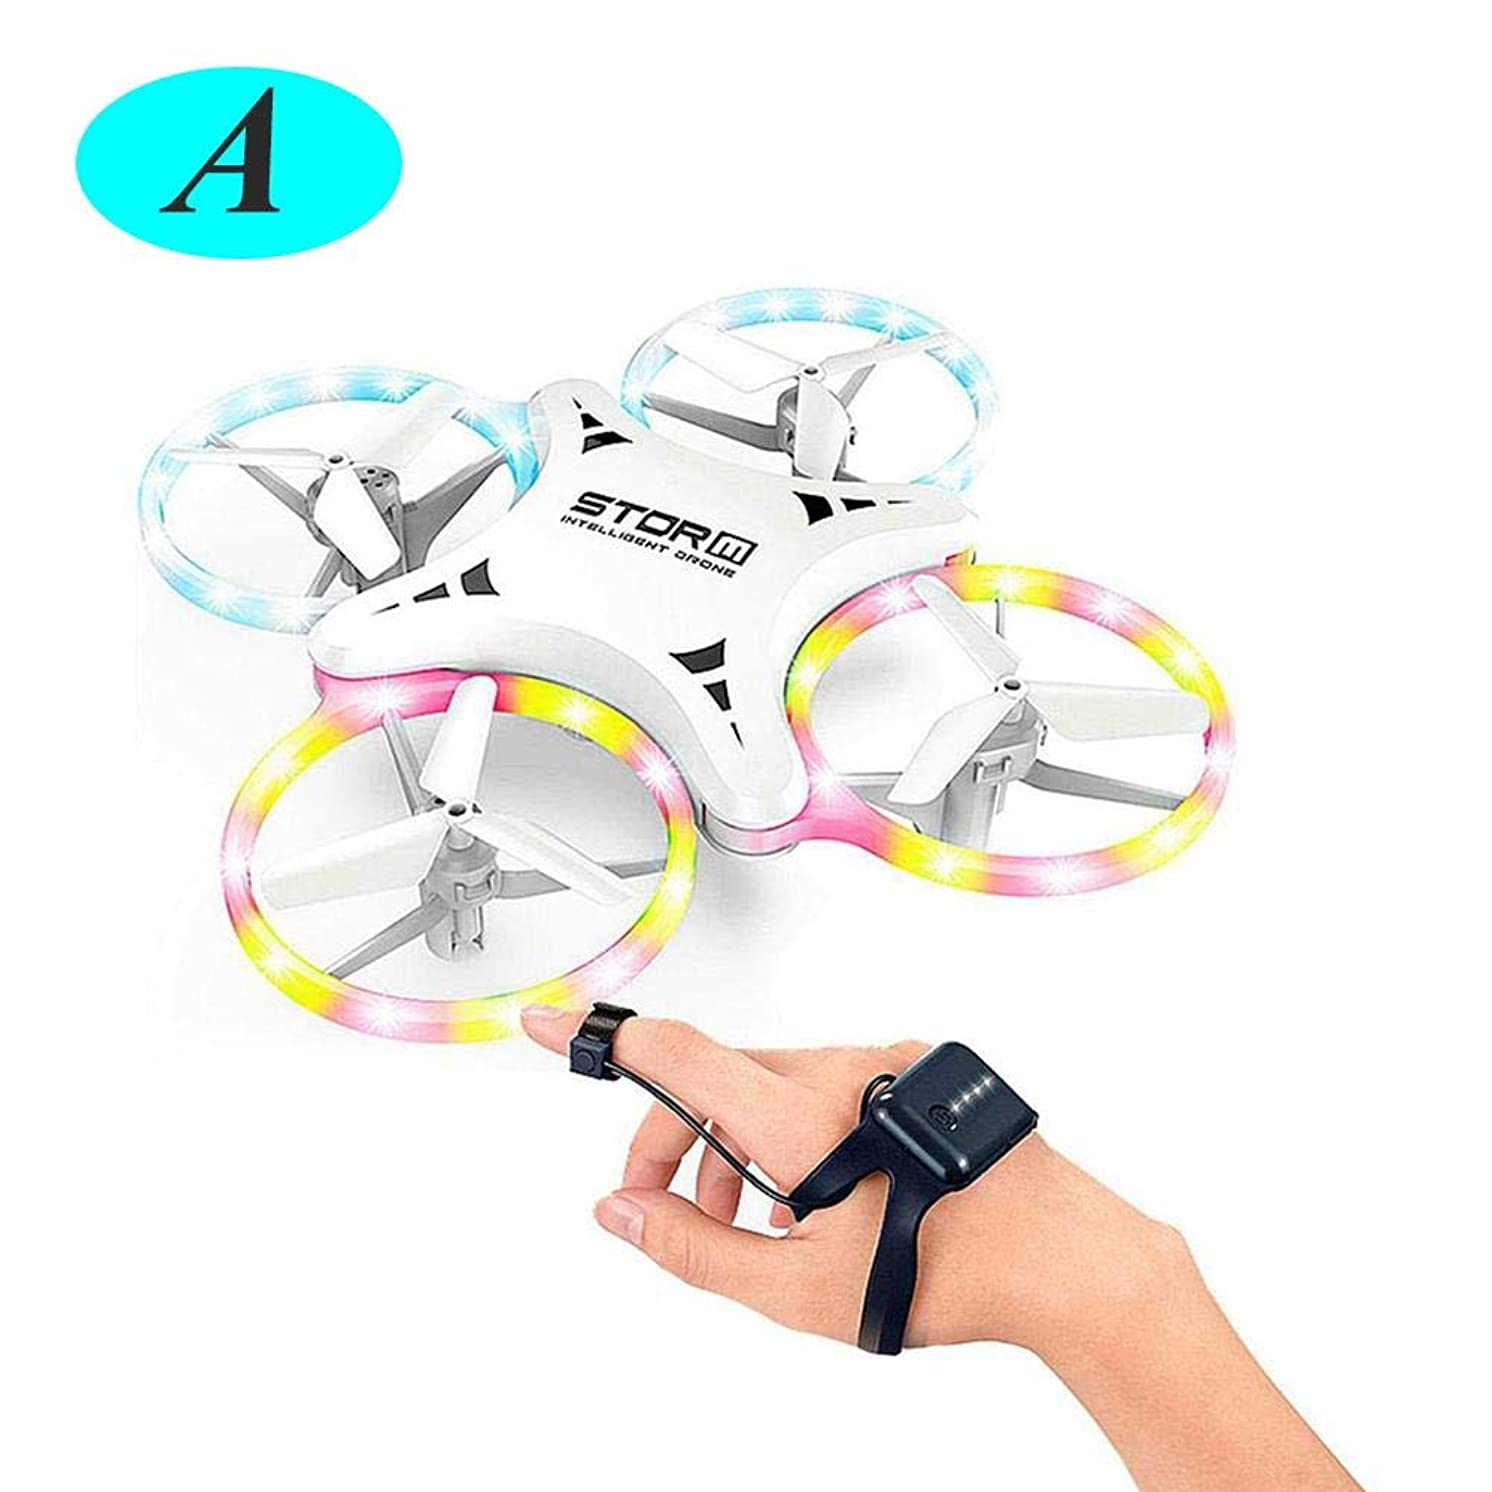 LianLe Mini Drone for Kids - UFO LED 4 Color Light Drones for Kids, Small Drones for Beginners W/ 4 Mini Quadcopter Batteries and Easy Toy Drone Remote Control